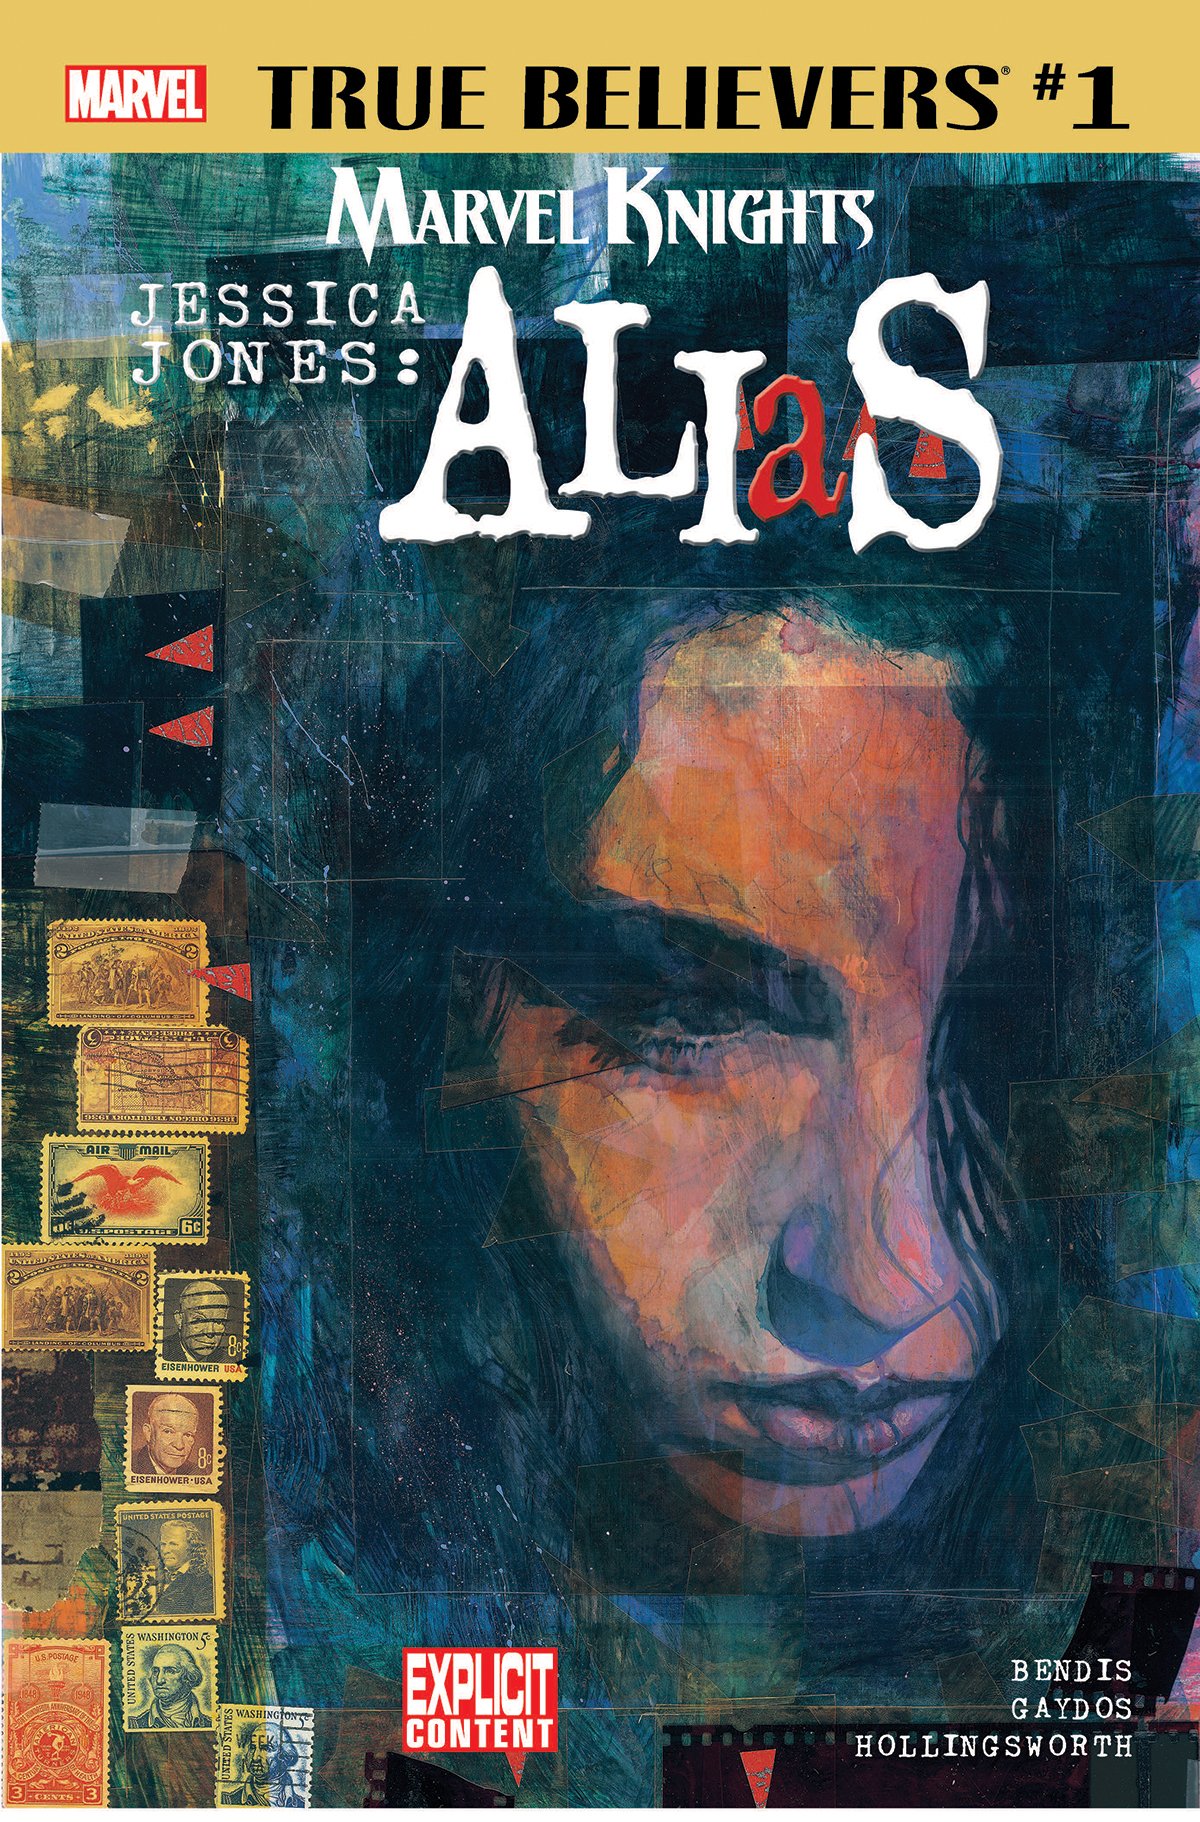 True Believers: Marvel Knights 20th Anniversary - Jessica Jones: Alias by Bendis & Gaydos (2018) #1